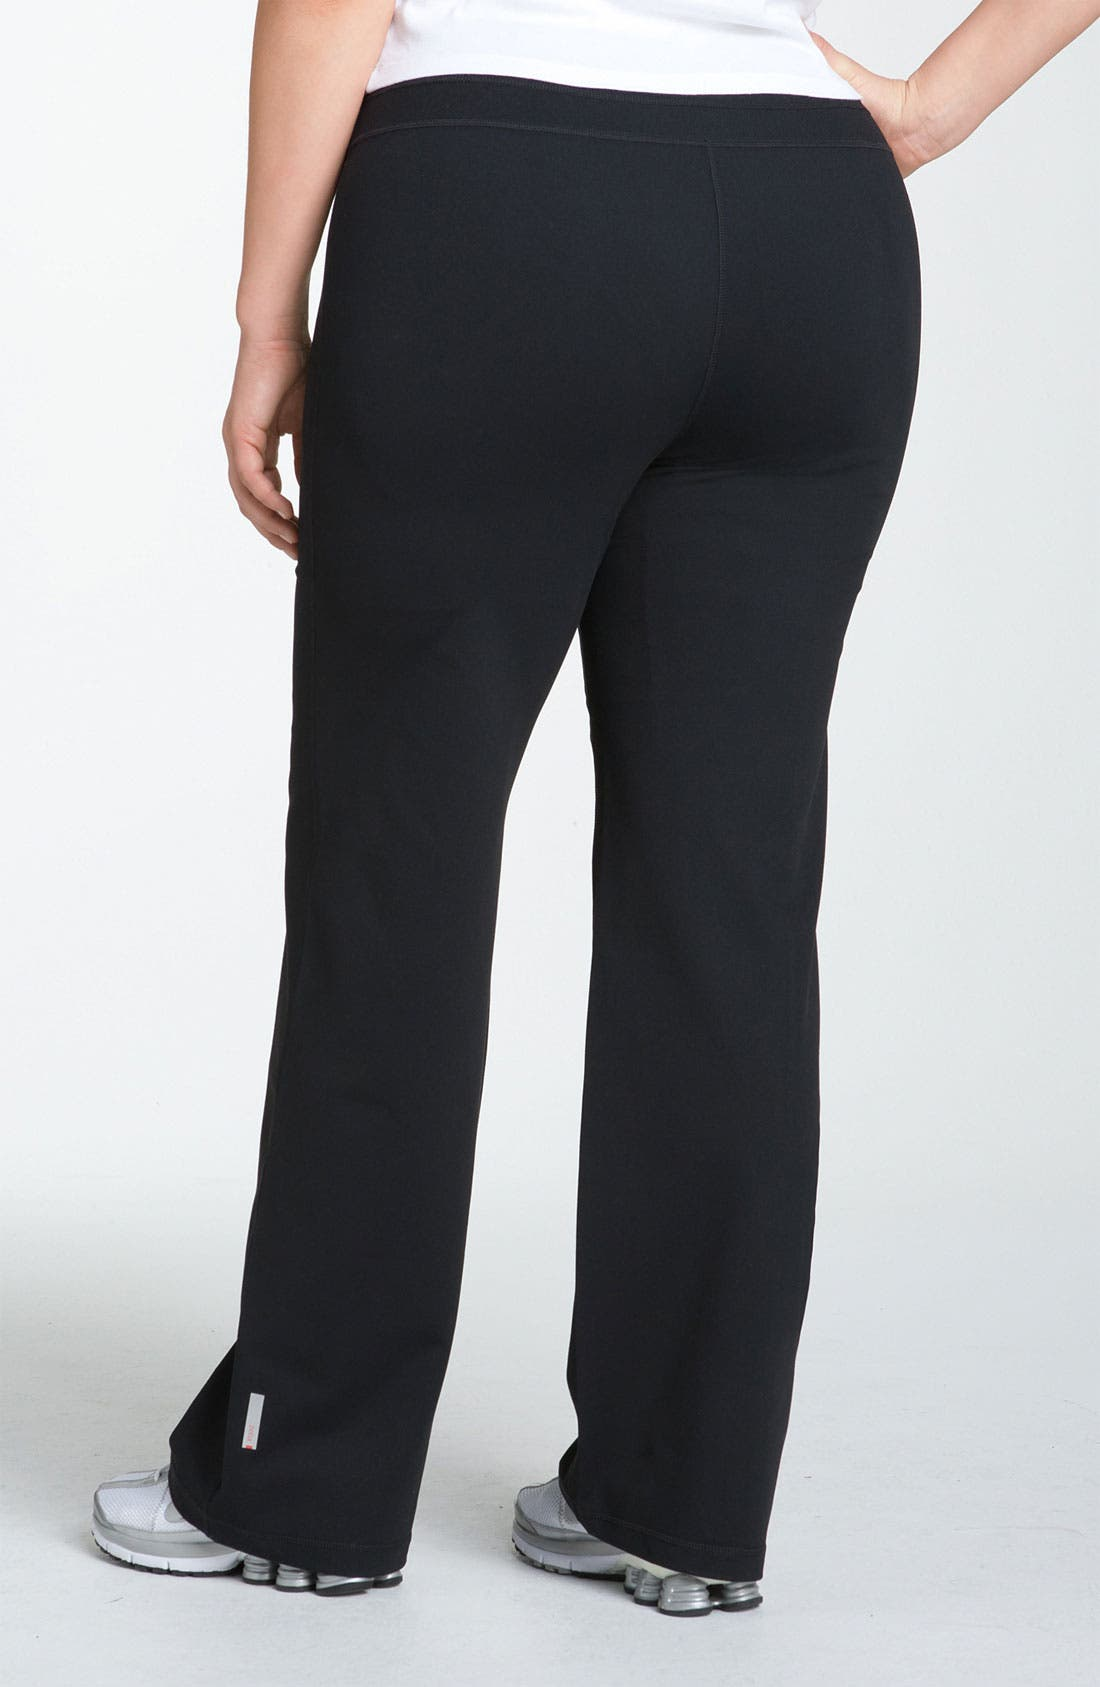 Alternate Image 2  - Zella 'Booty' Reversible Pants (Plus Size)